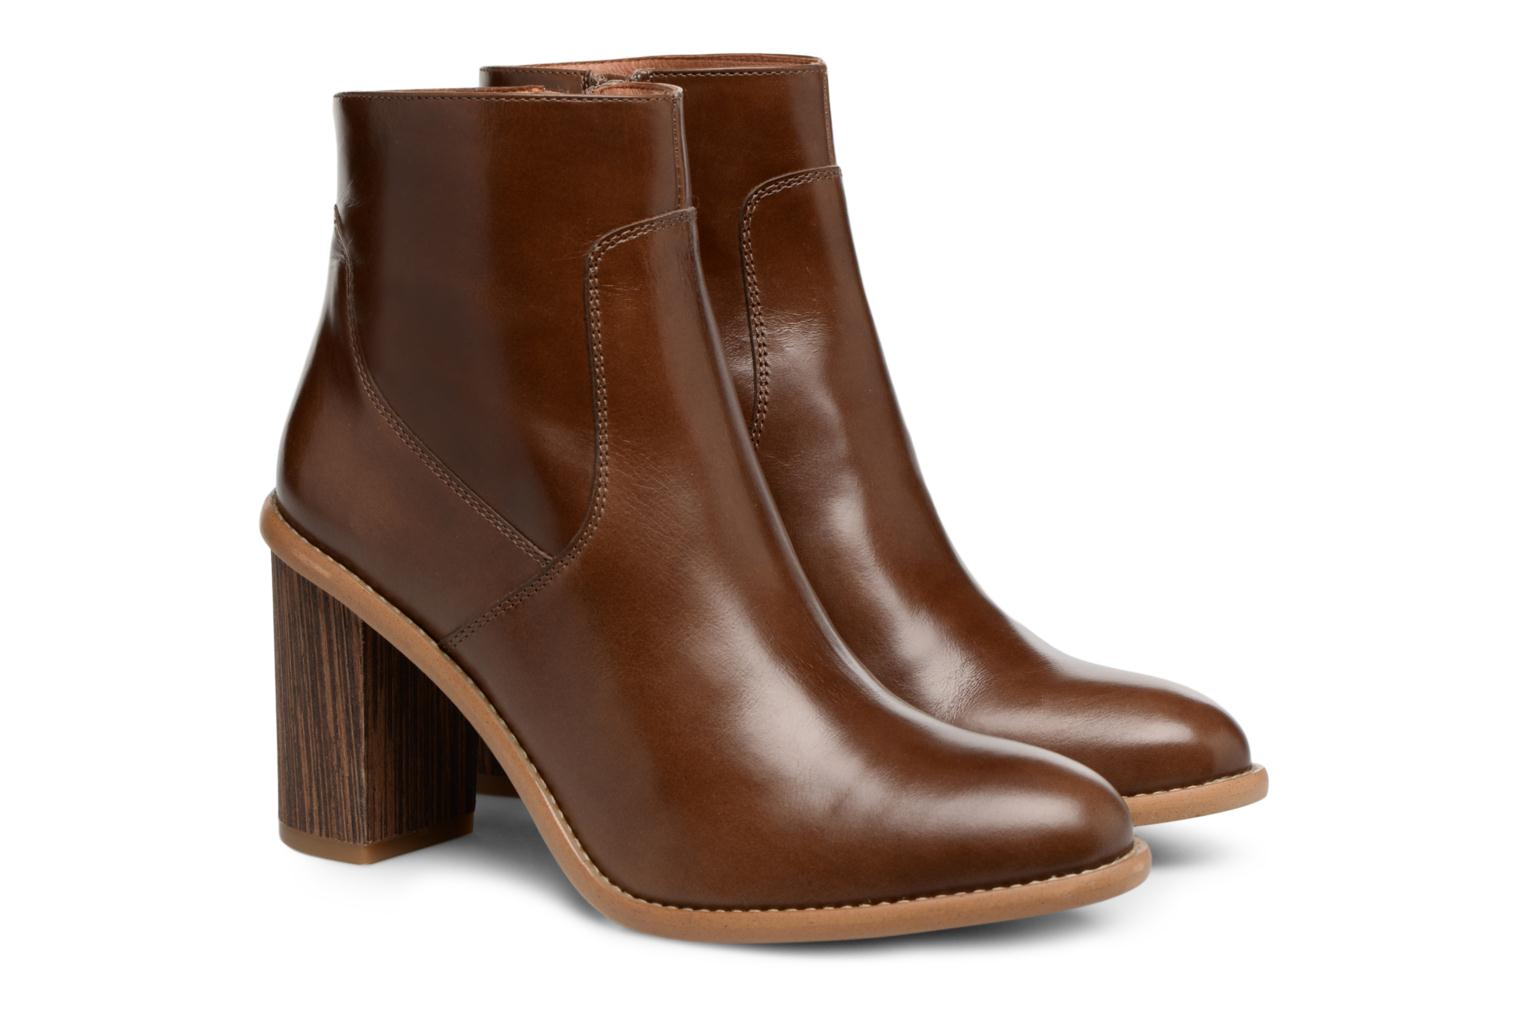 Made by Cuir Lisse Crew SARENZA Carioca 1 Marrin Boots ddvrUx6